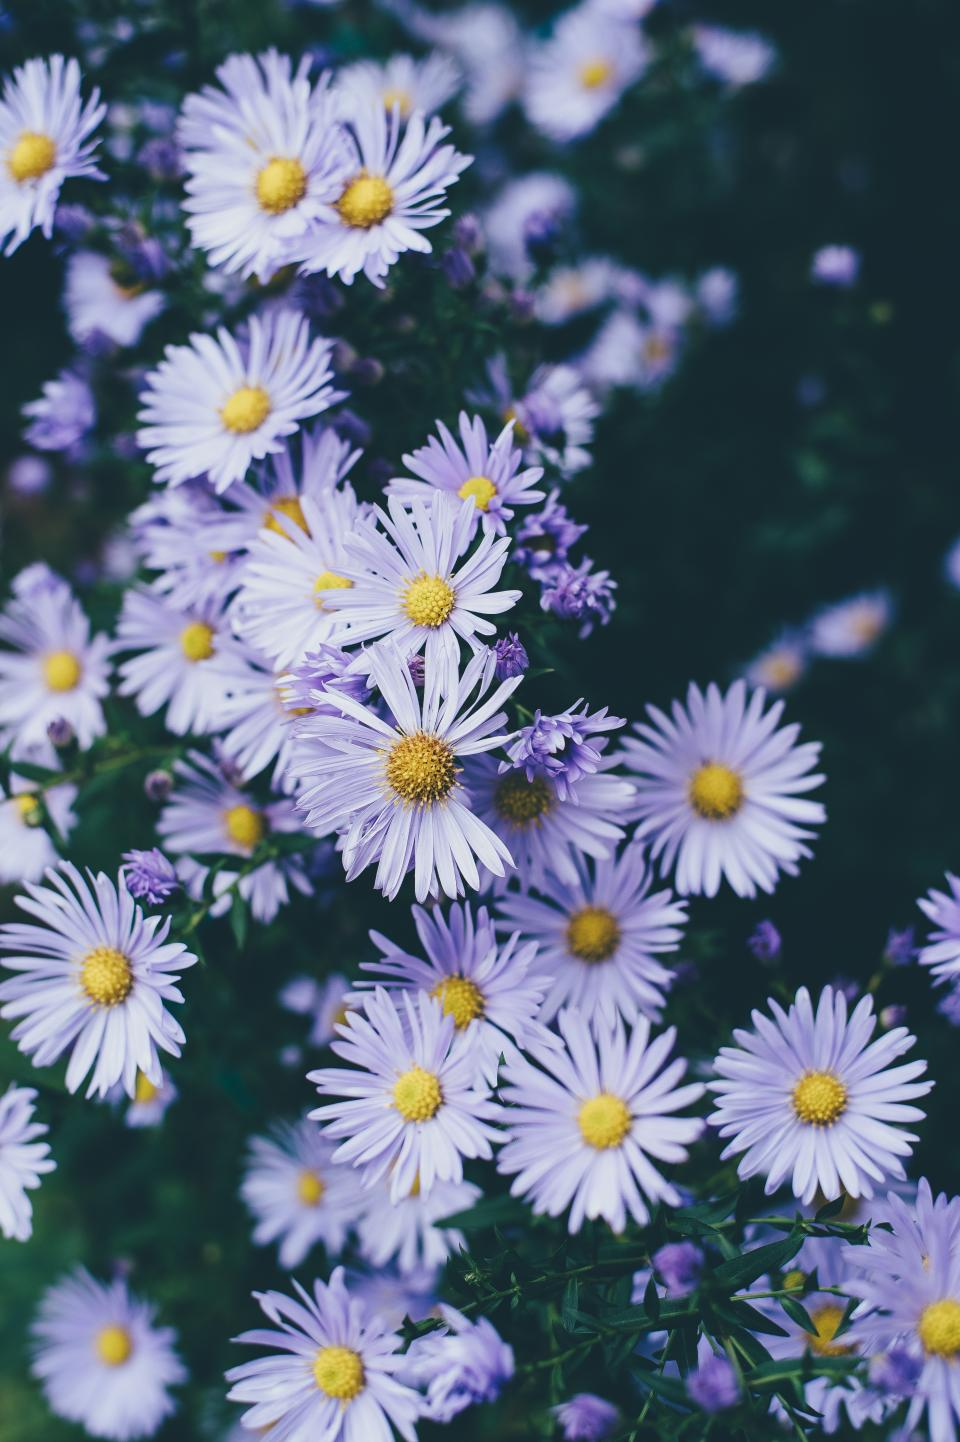 flowers, petals, purple, bloom, garden, farm, nature, plant